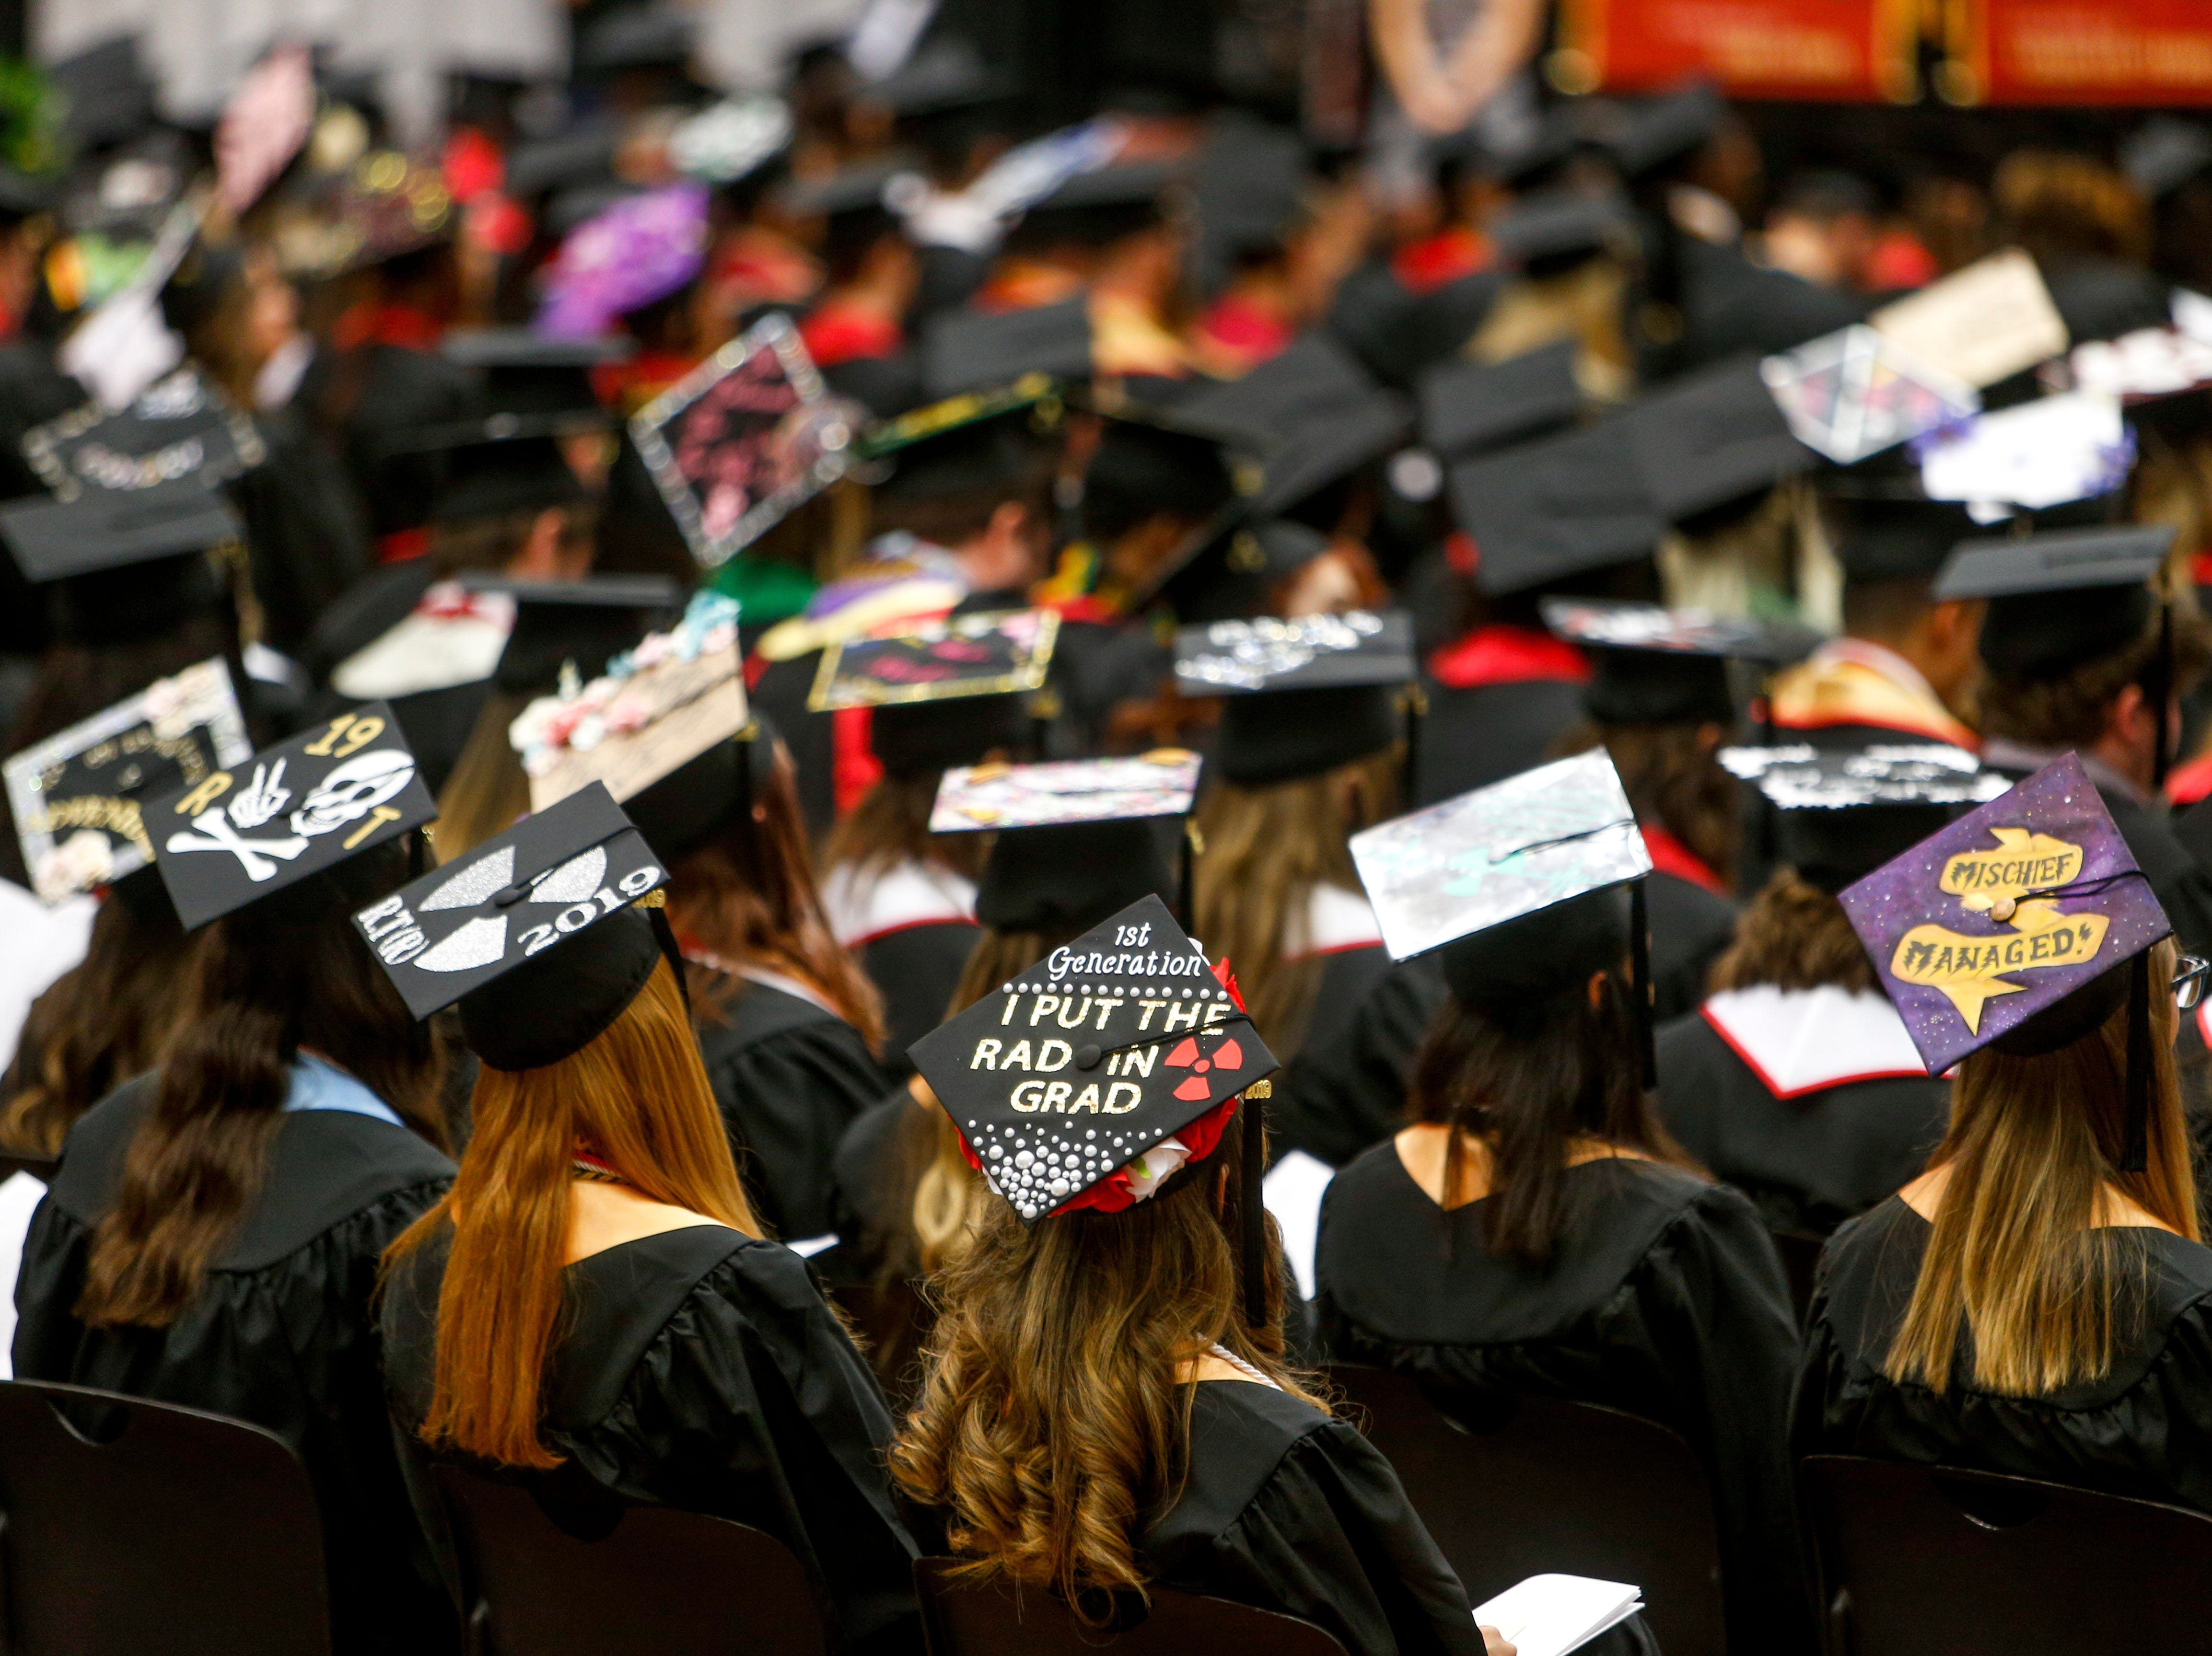 Graduates decorate their caps with personal notes and slogans at the Austin Peay spring commencement ceremony 2019 for College of Business and College of STEM at Winfield Dunn Center in Clarksville, Tenn., on Friday, May 3, 2019.